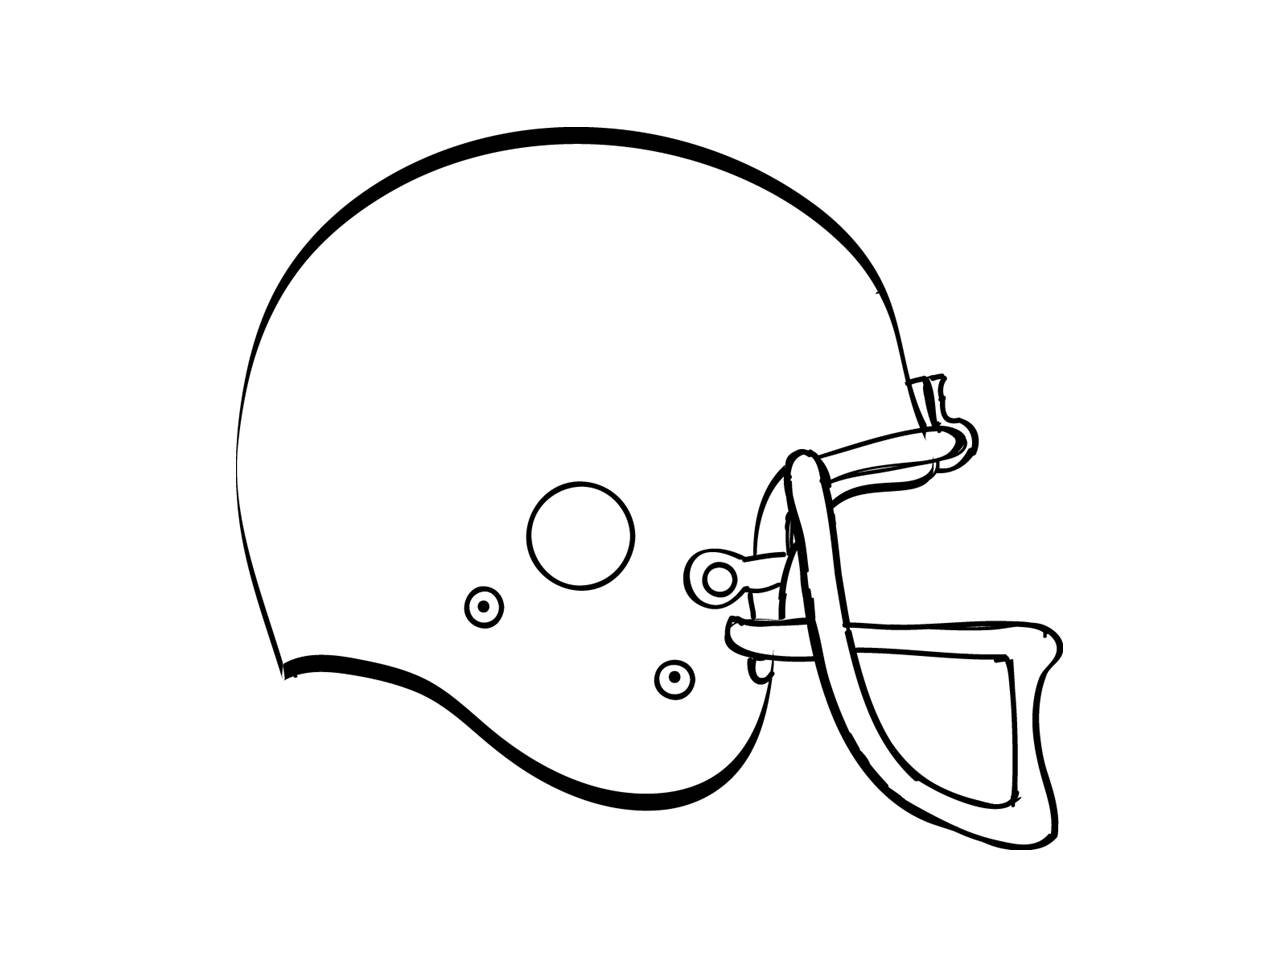 Football Helmet Coloring Page Free How To Draw A Football Helmet Download Free Clip Art Free